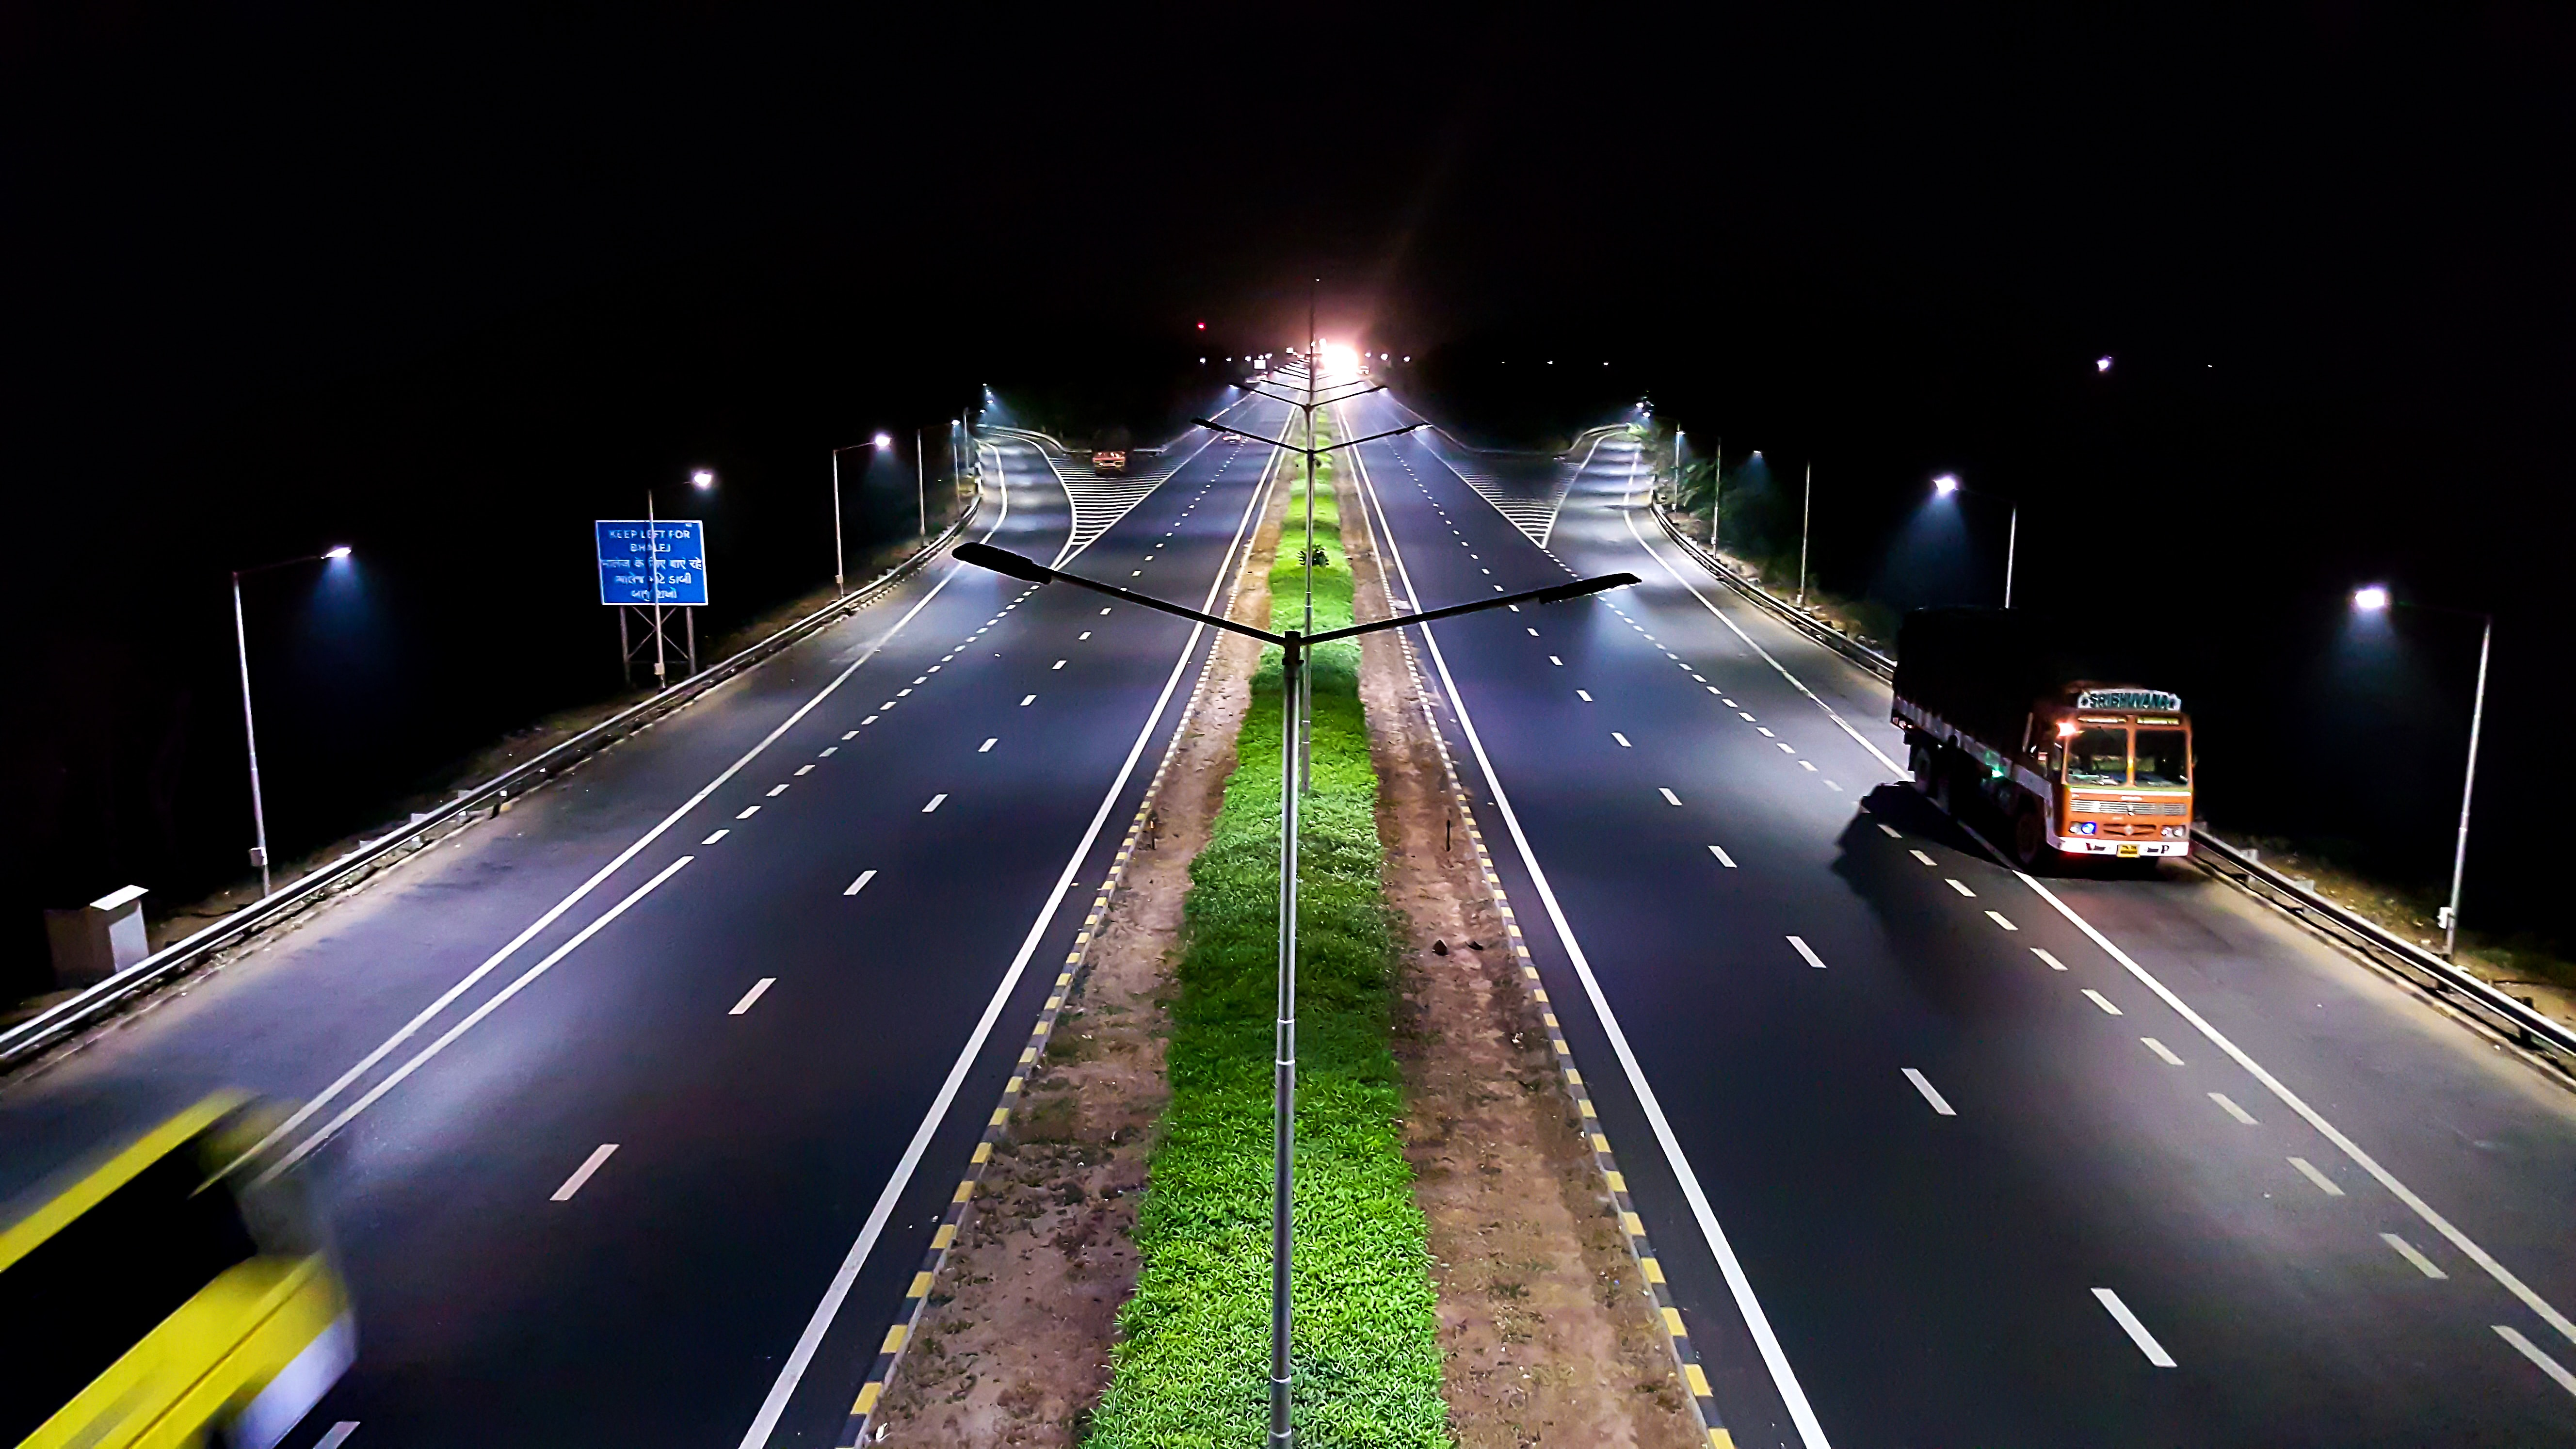 Highway at Nighttime